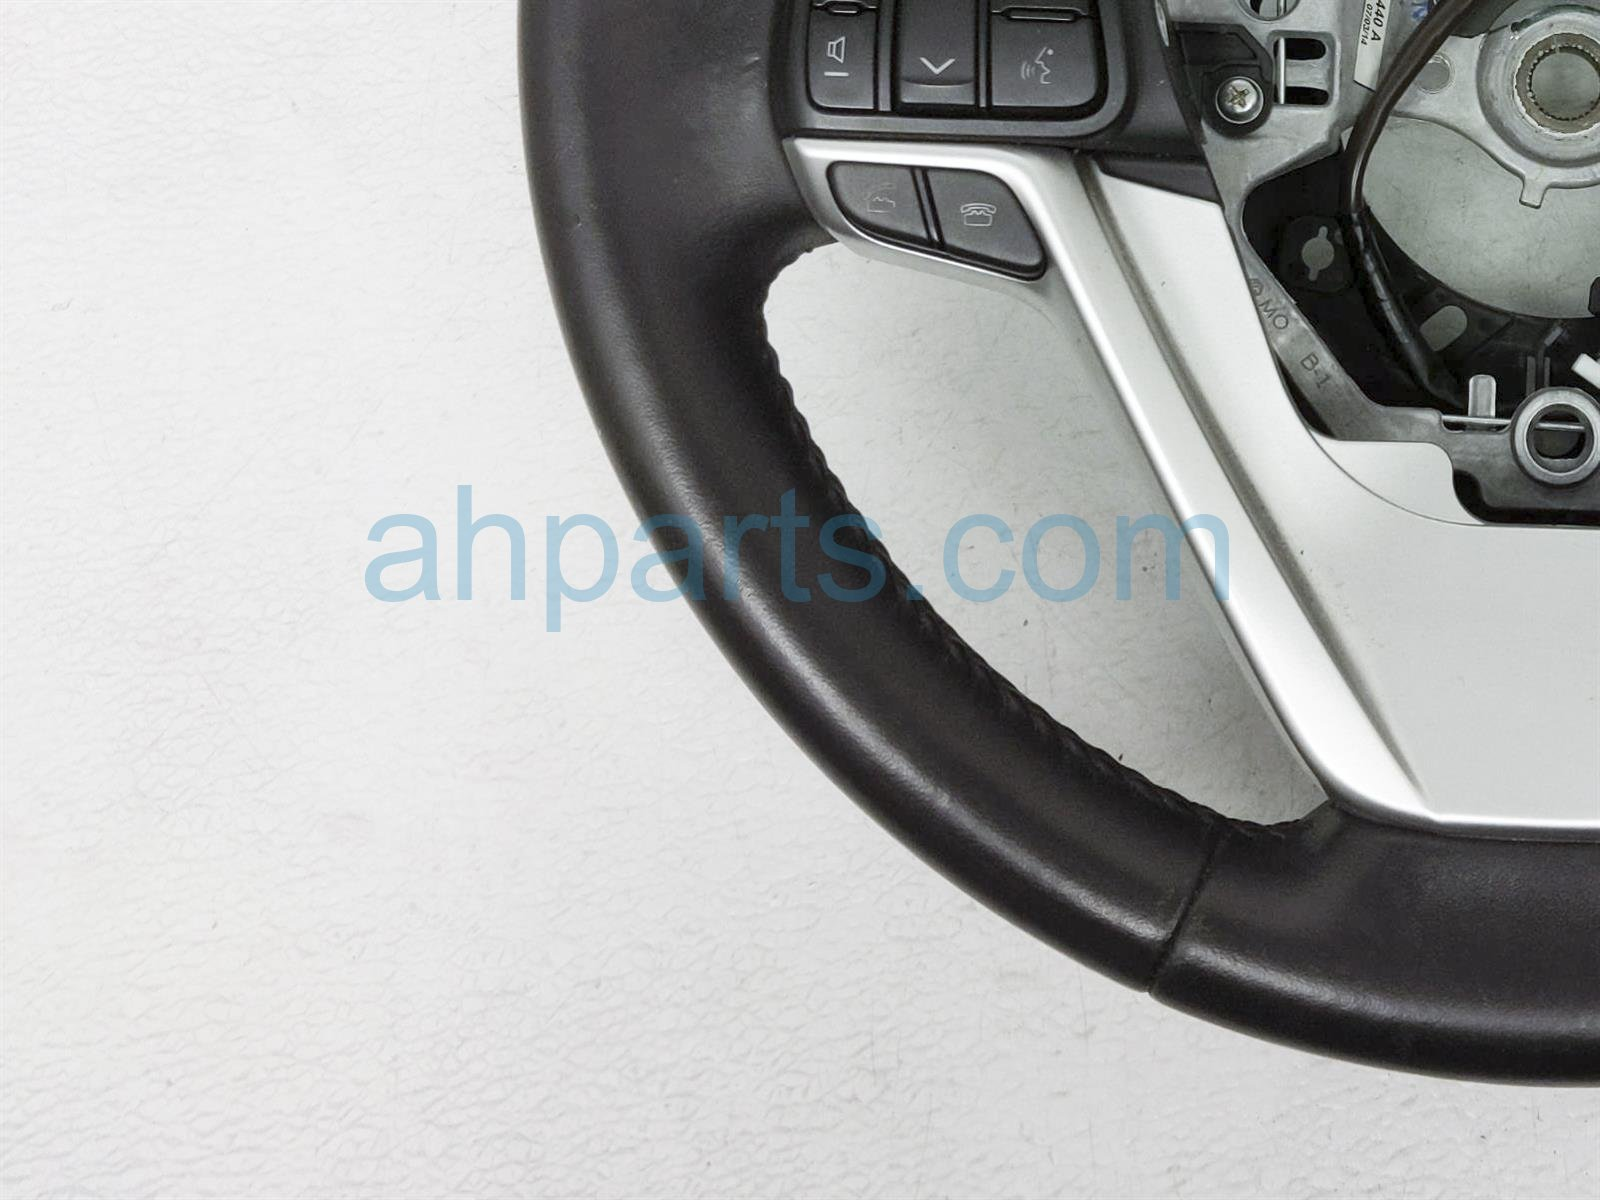 2014 Toyota Highlander Steering Wheel   Black Leather 45100 0E361 C0 Replacement